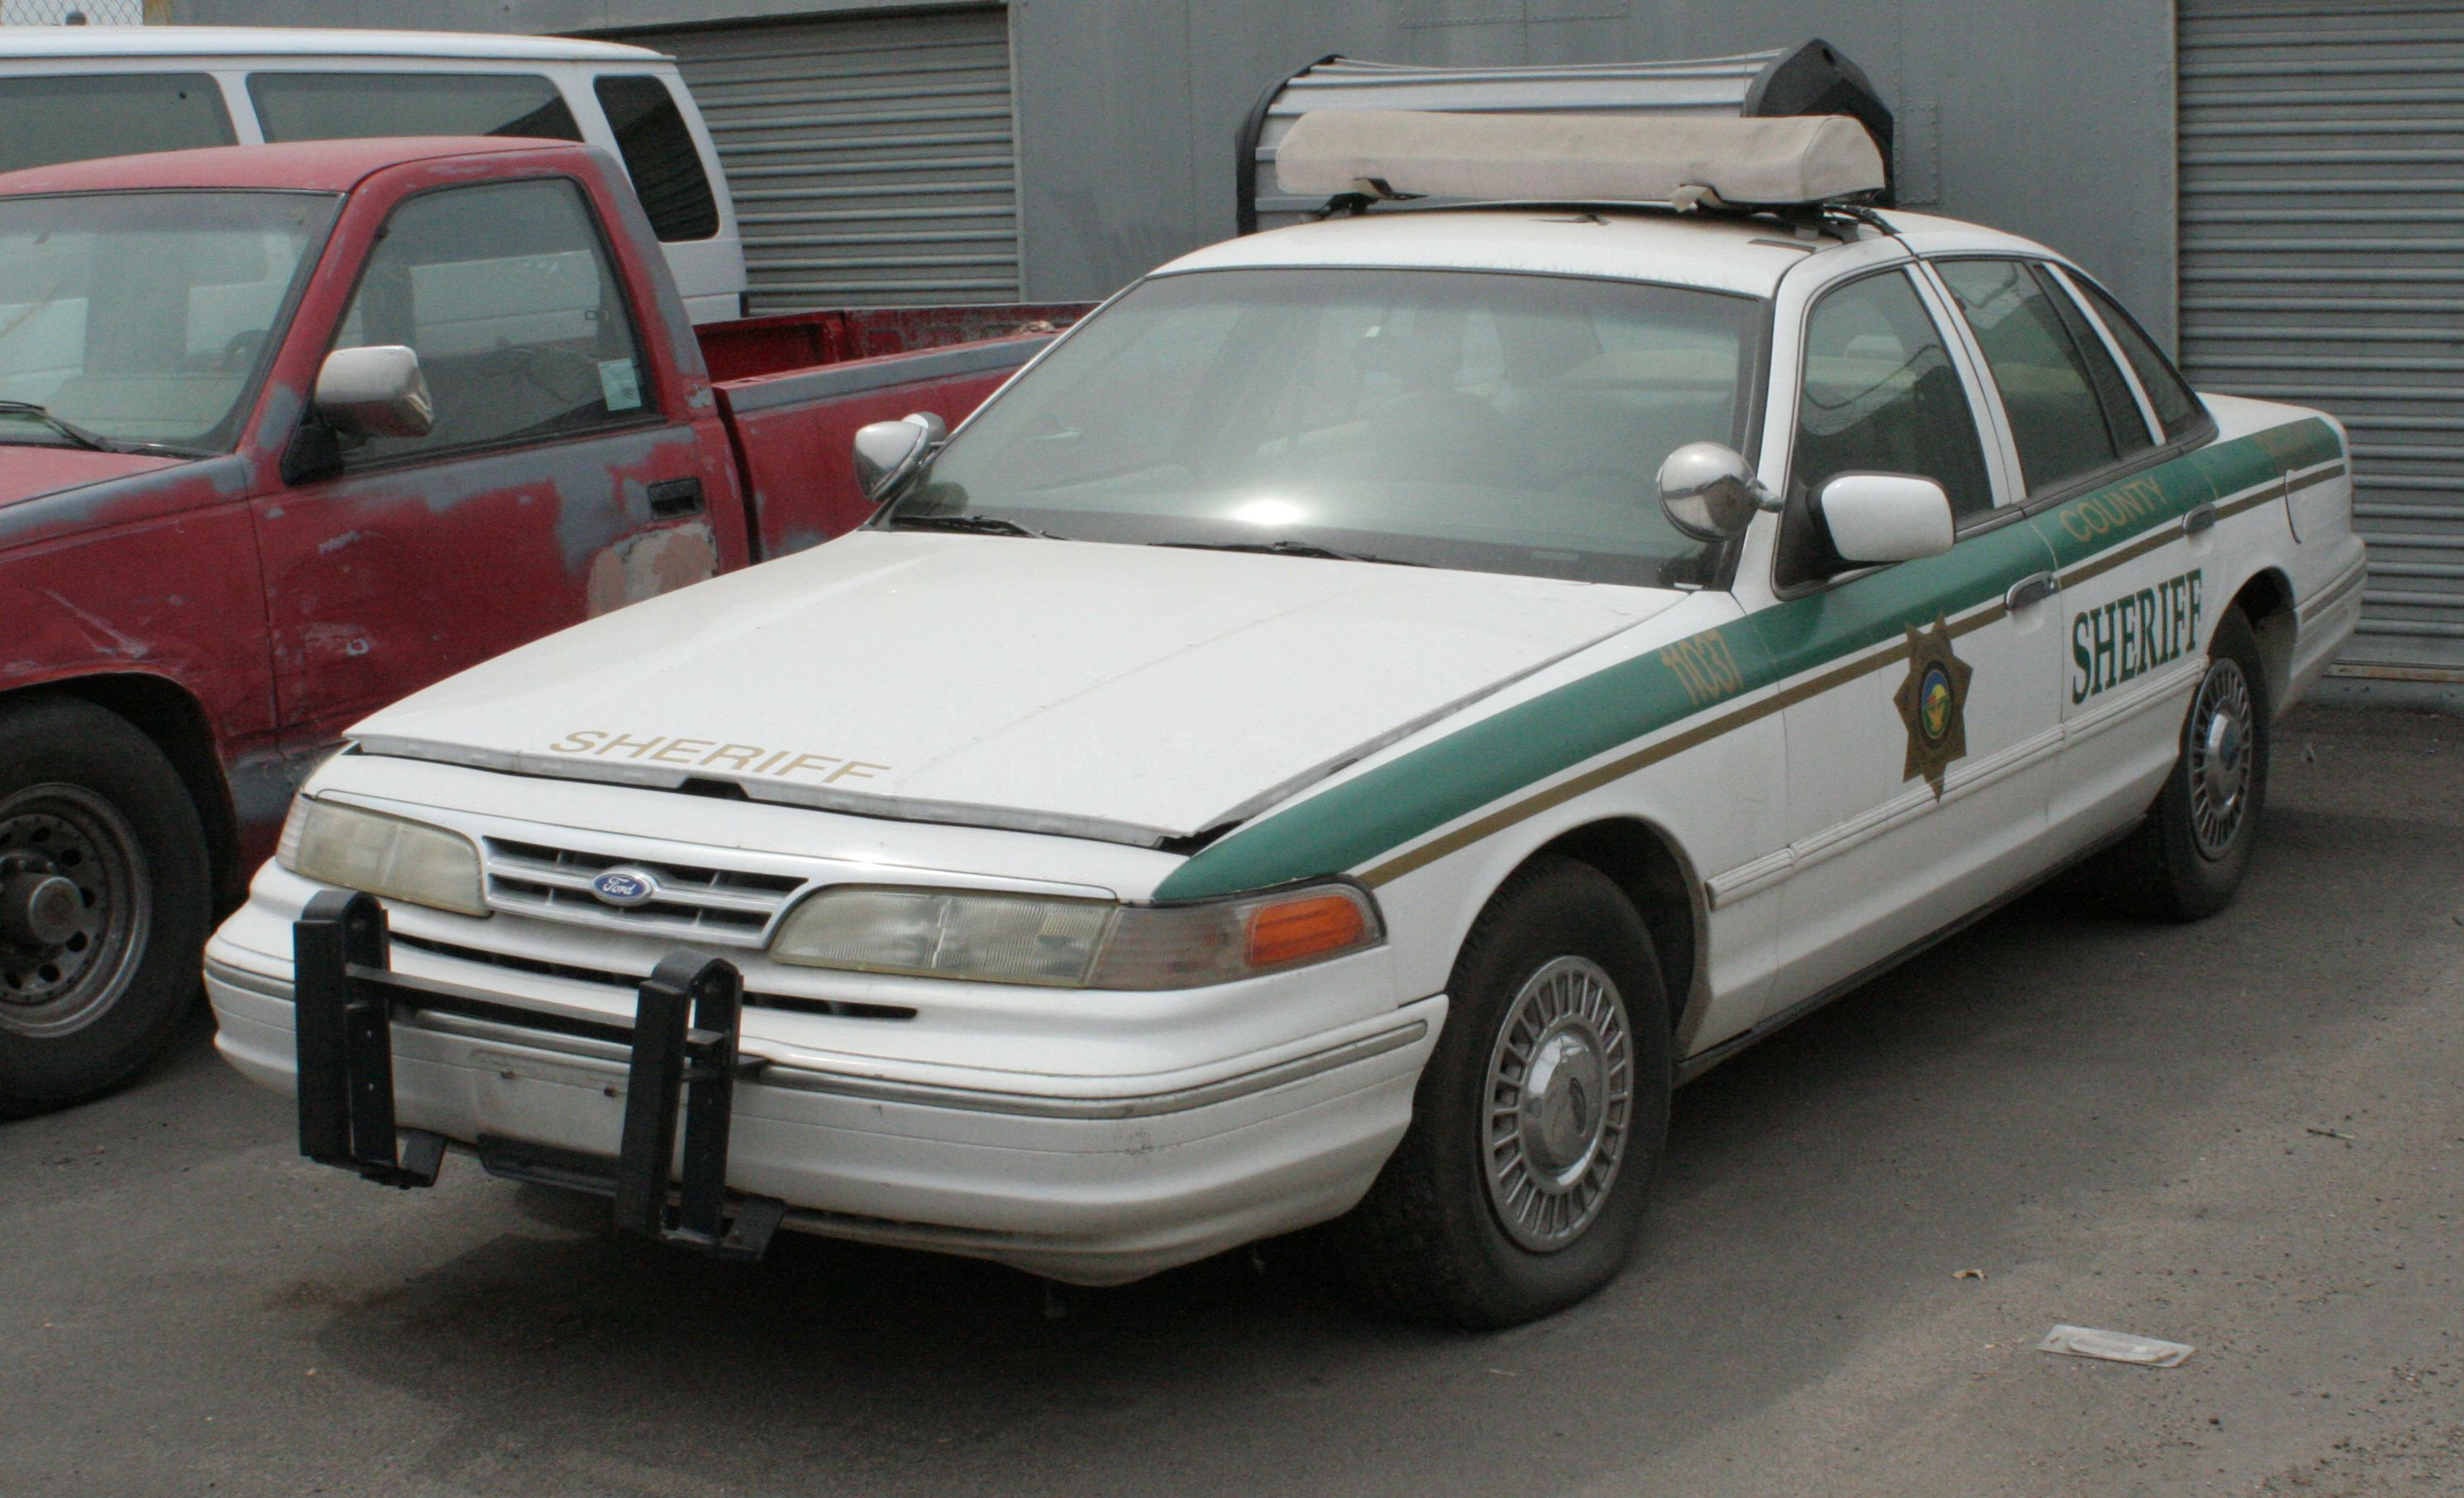 Sheriff S Car From Jericho Tv Series Victoria Police